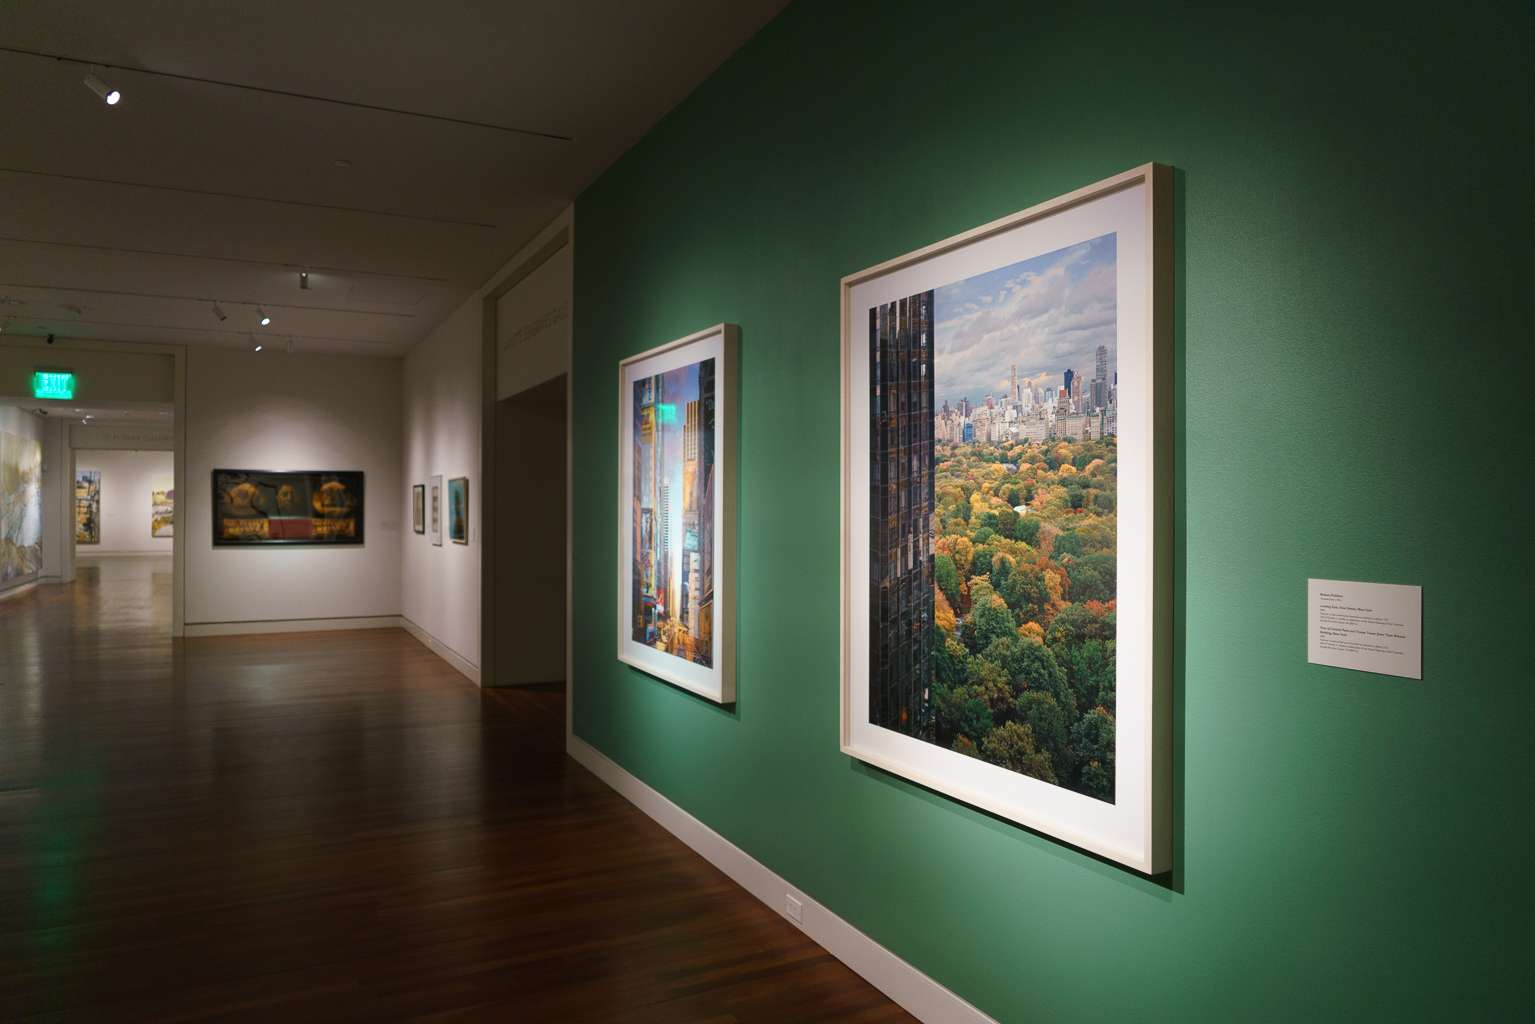 """Robert Polidori's """"Looking East, 42nd Street, New York"""" (2002) and """"View of Central Park and Trump Tower from Time Warner Building, New York"""" (2003), two massive c-prints"""